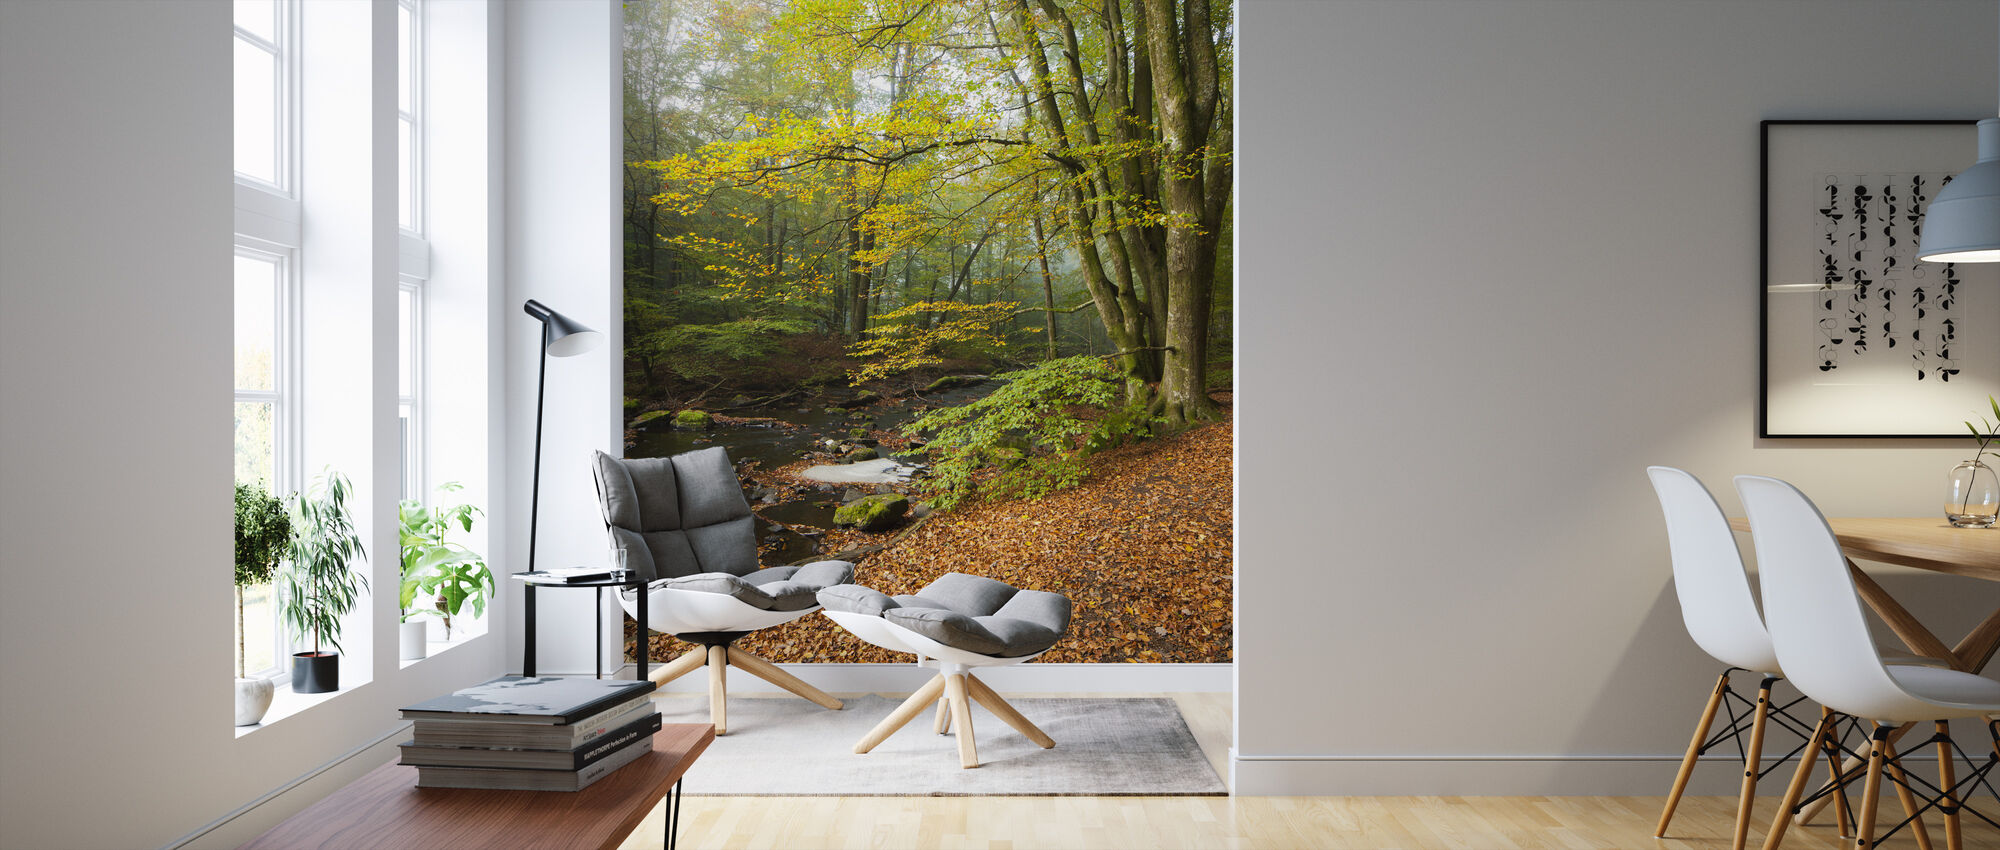 Swedish Beech Forest II - Wallpaper - Living Room